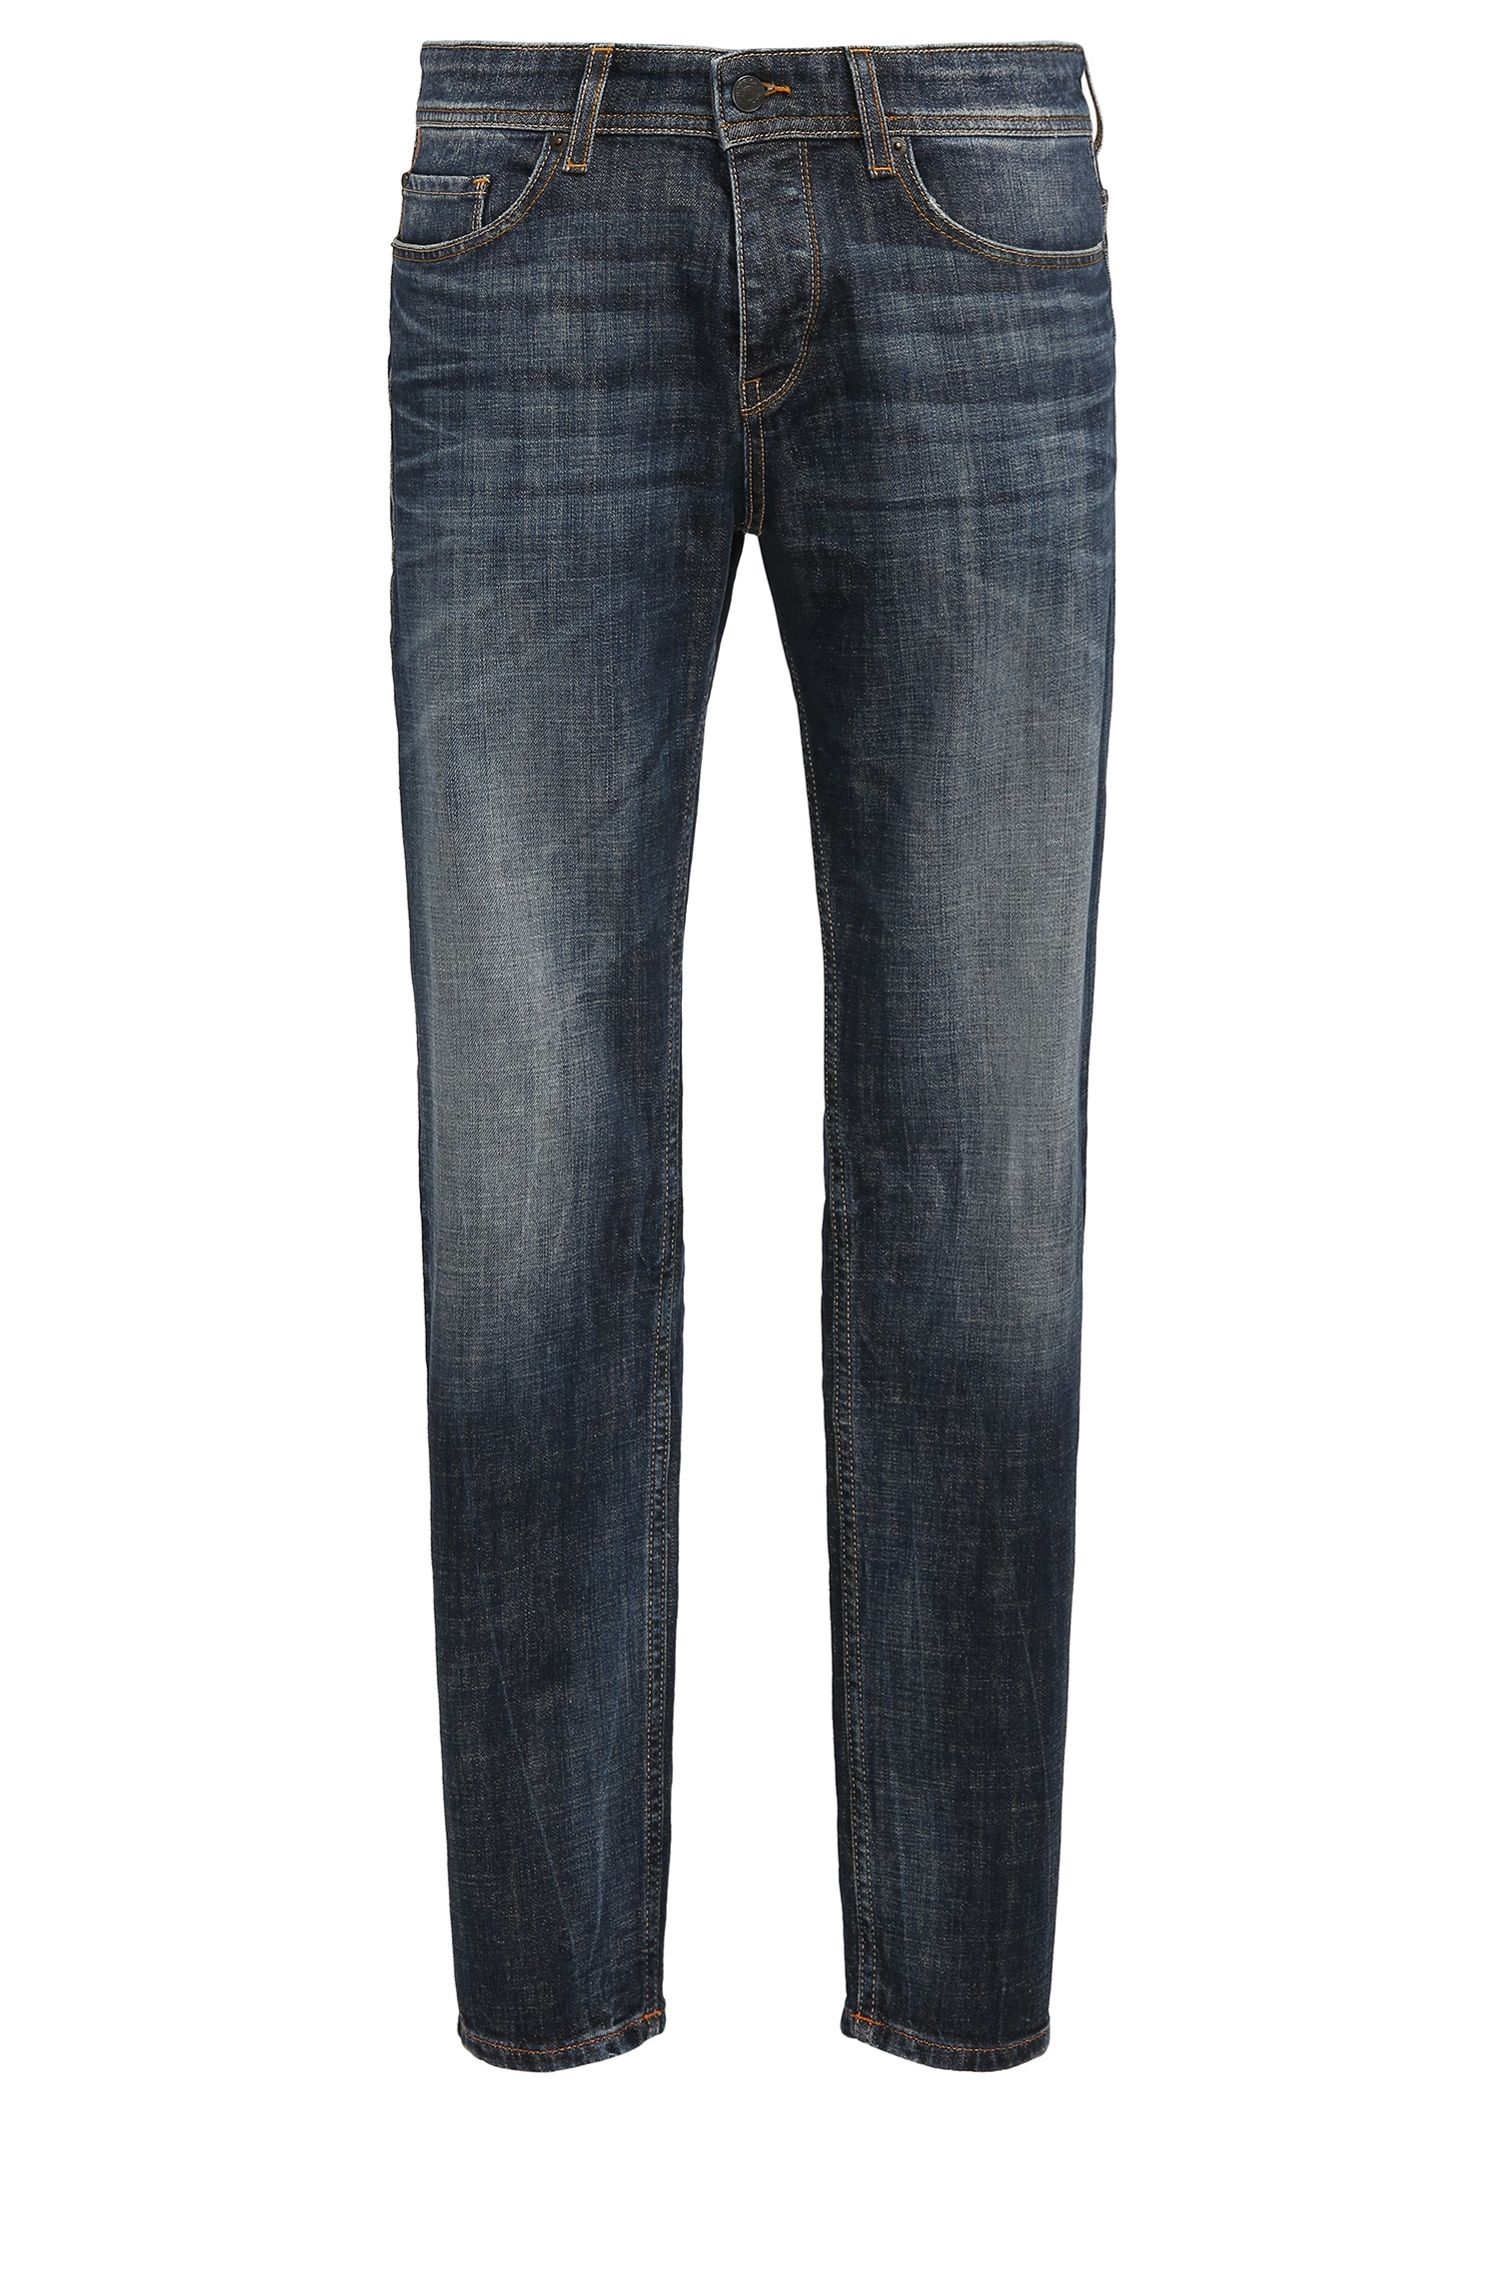 Jeans Tapered Fit en denim stretch compact, Bleu foncé